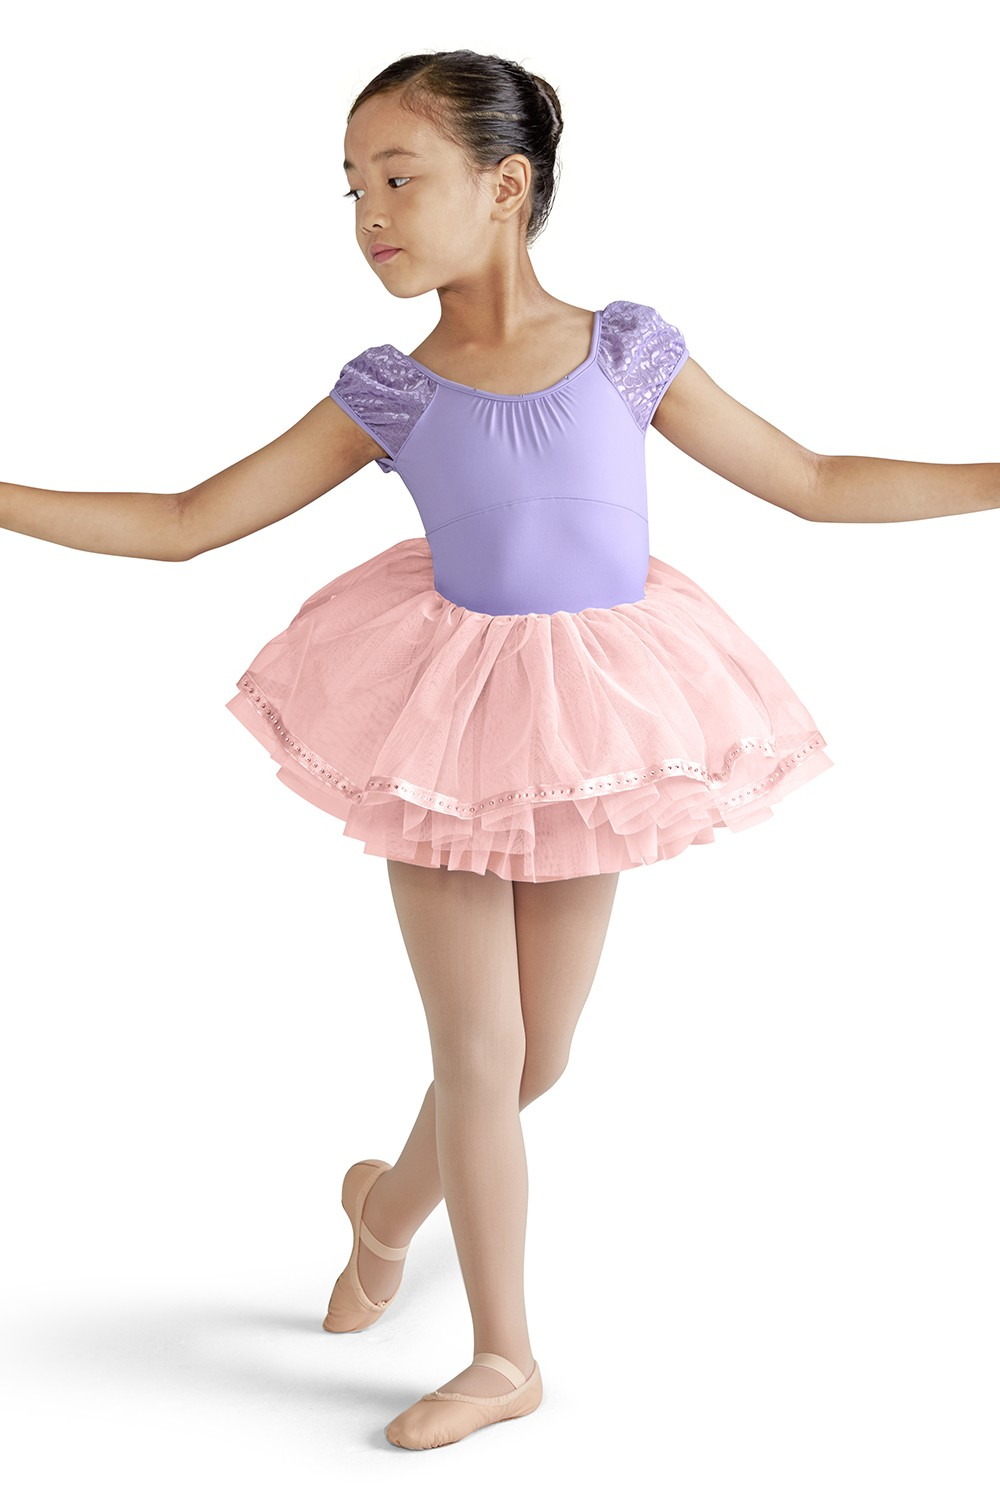 Ribbon Hem Tutu Skirt Children's Dance Skirts